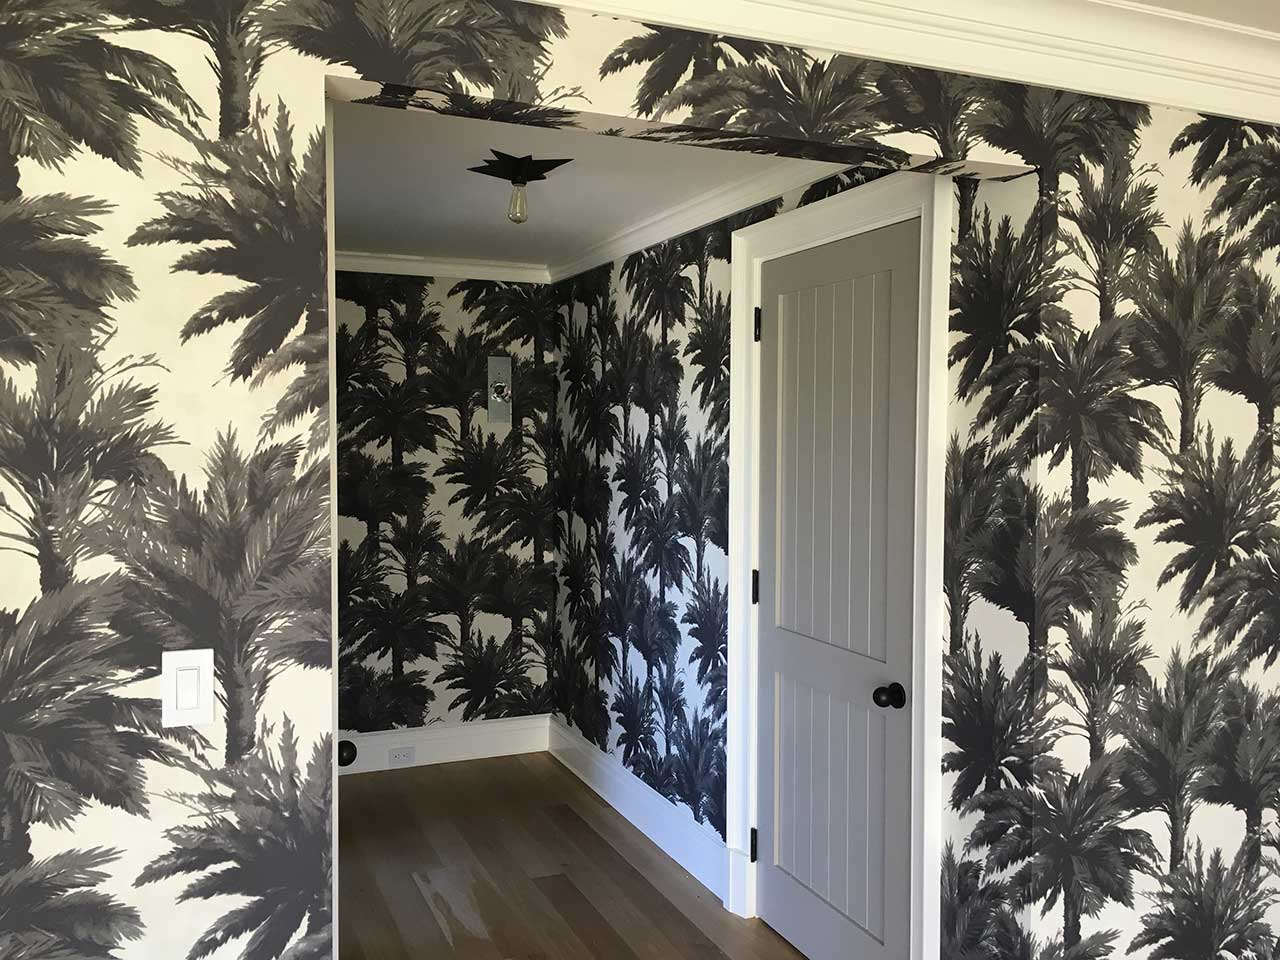 wallpapering-palm-pattern